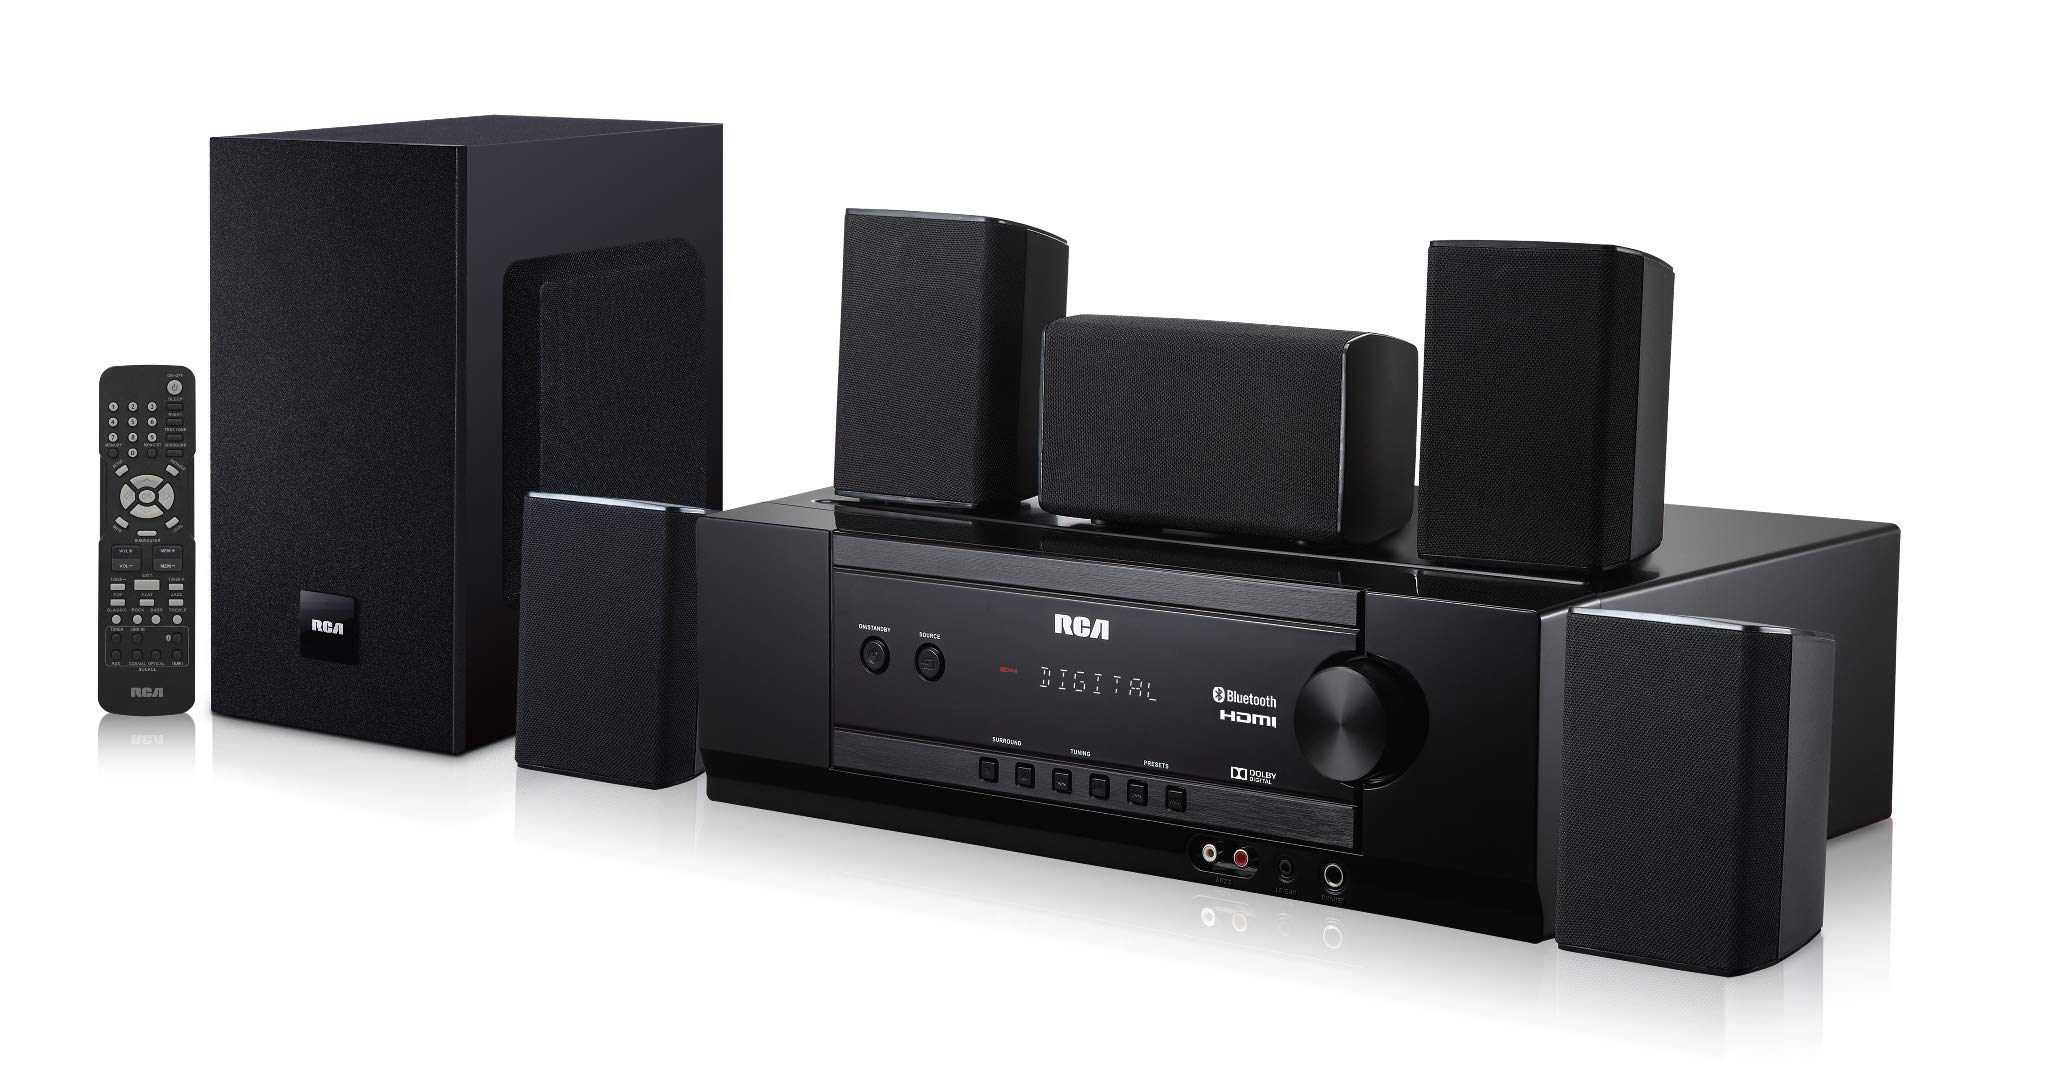 Sound Bar vs. Home Theater, Which One Best Suits Your Home TV Entertainment